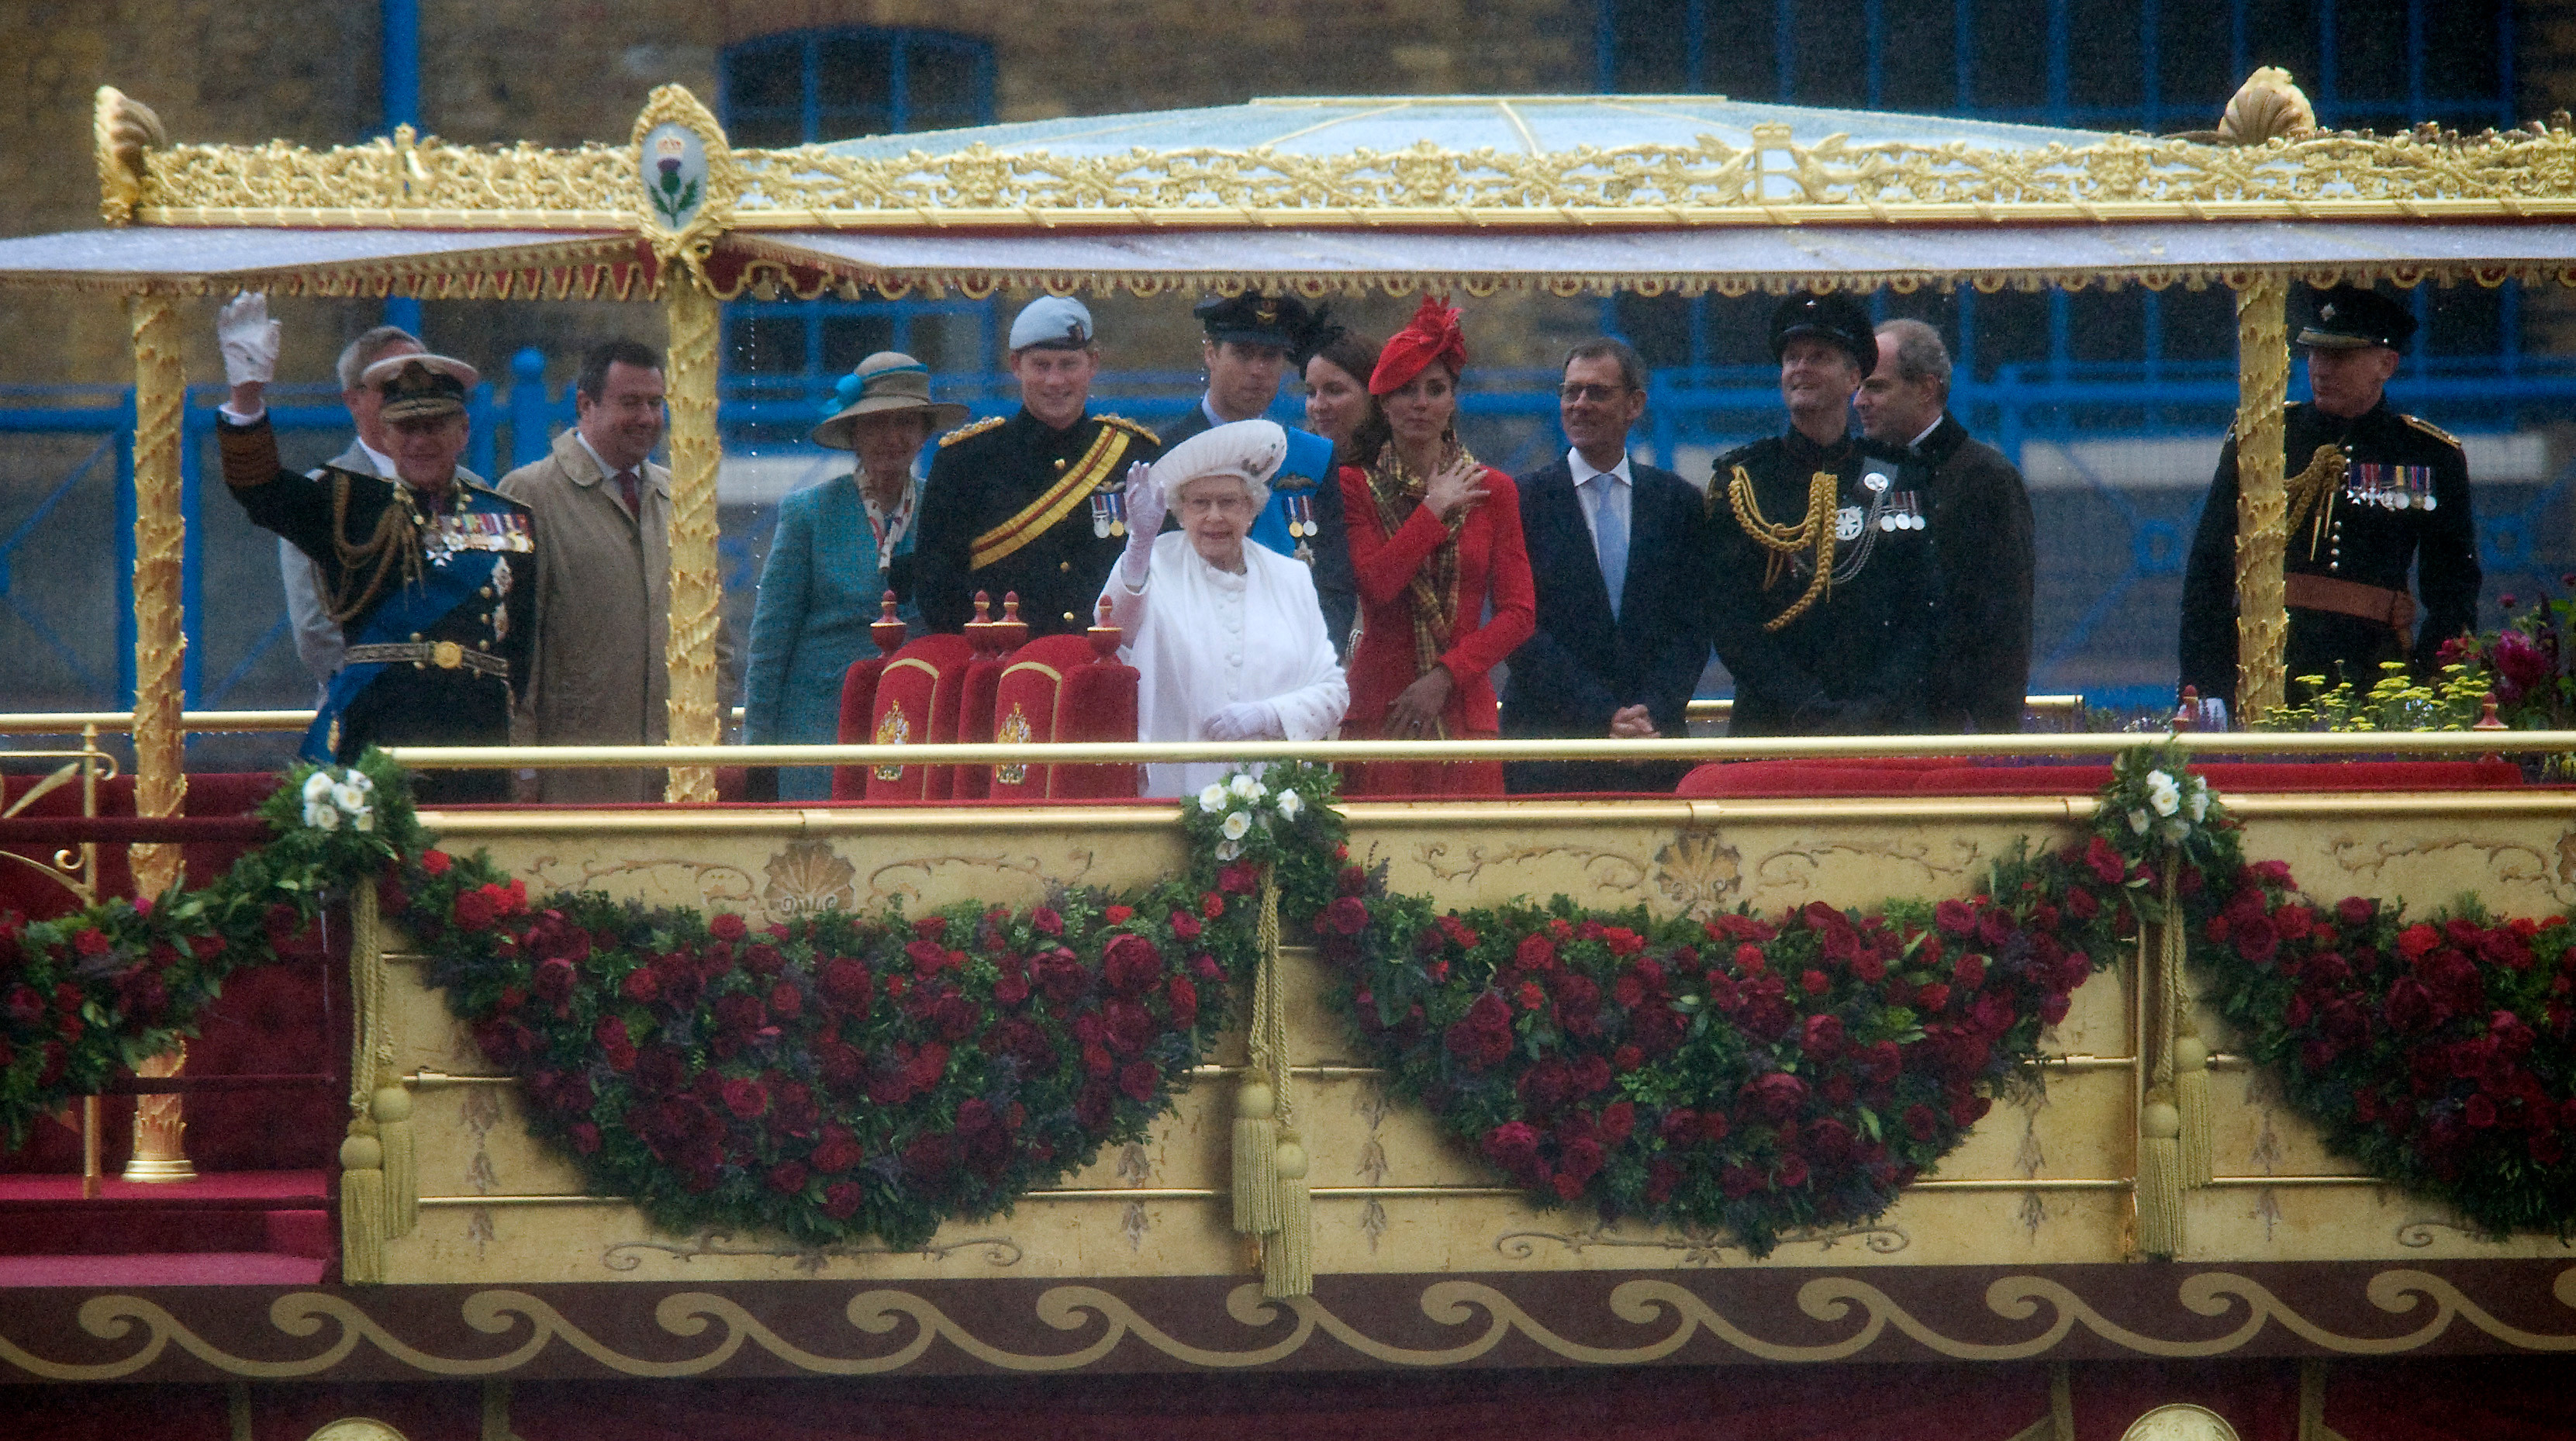 The Queen celebrated 60 years on the throne at her Diamond Jubilee